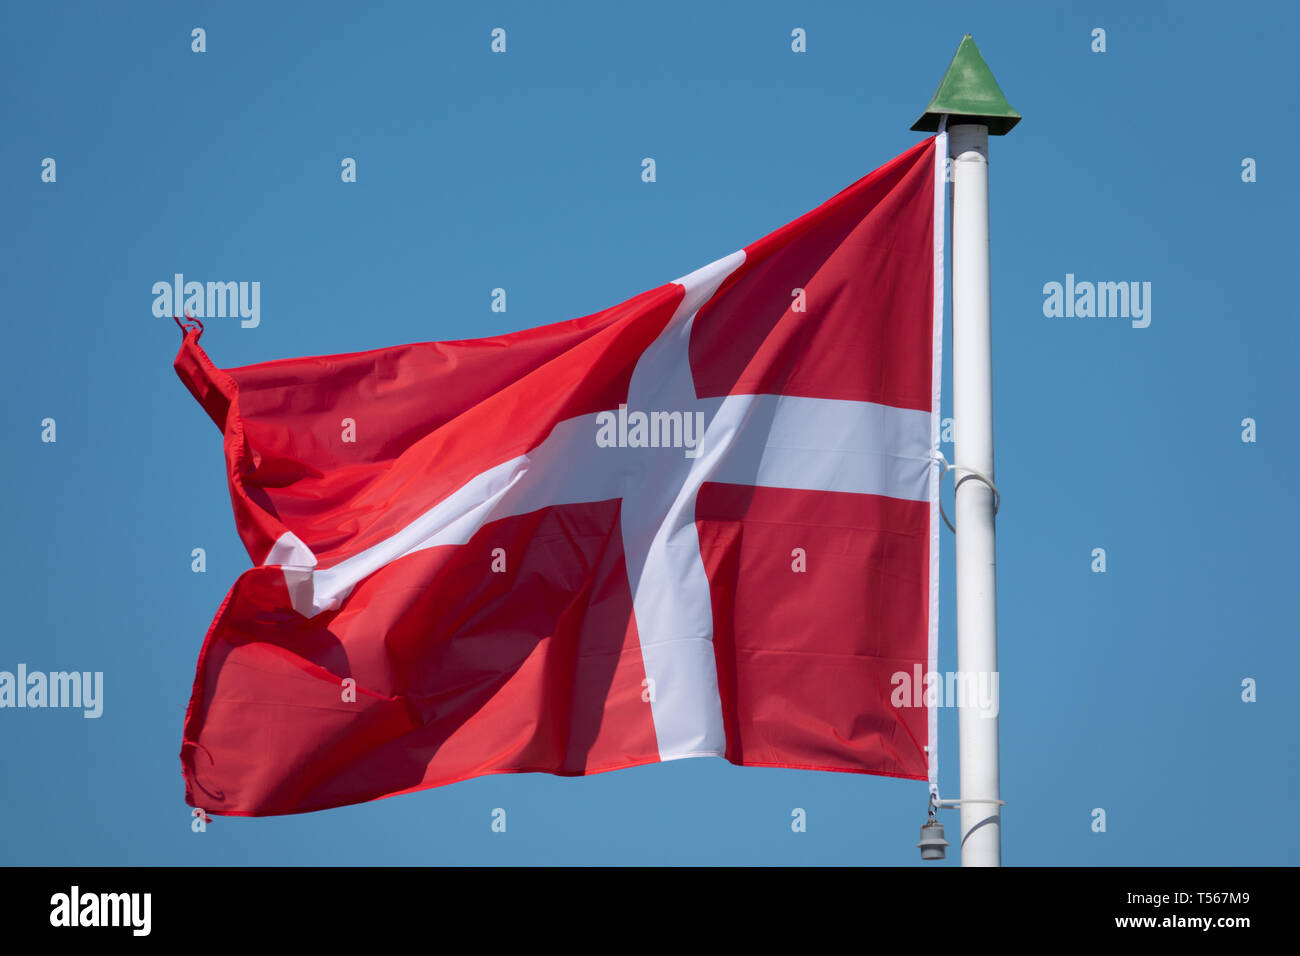 a flag of Denmark blowing before a blue sky - Stock Image